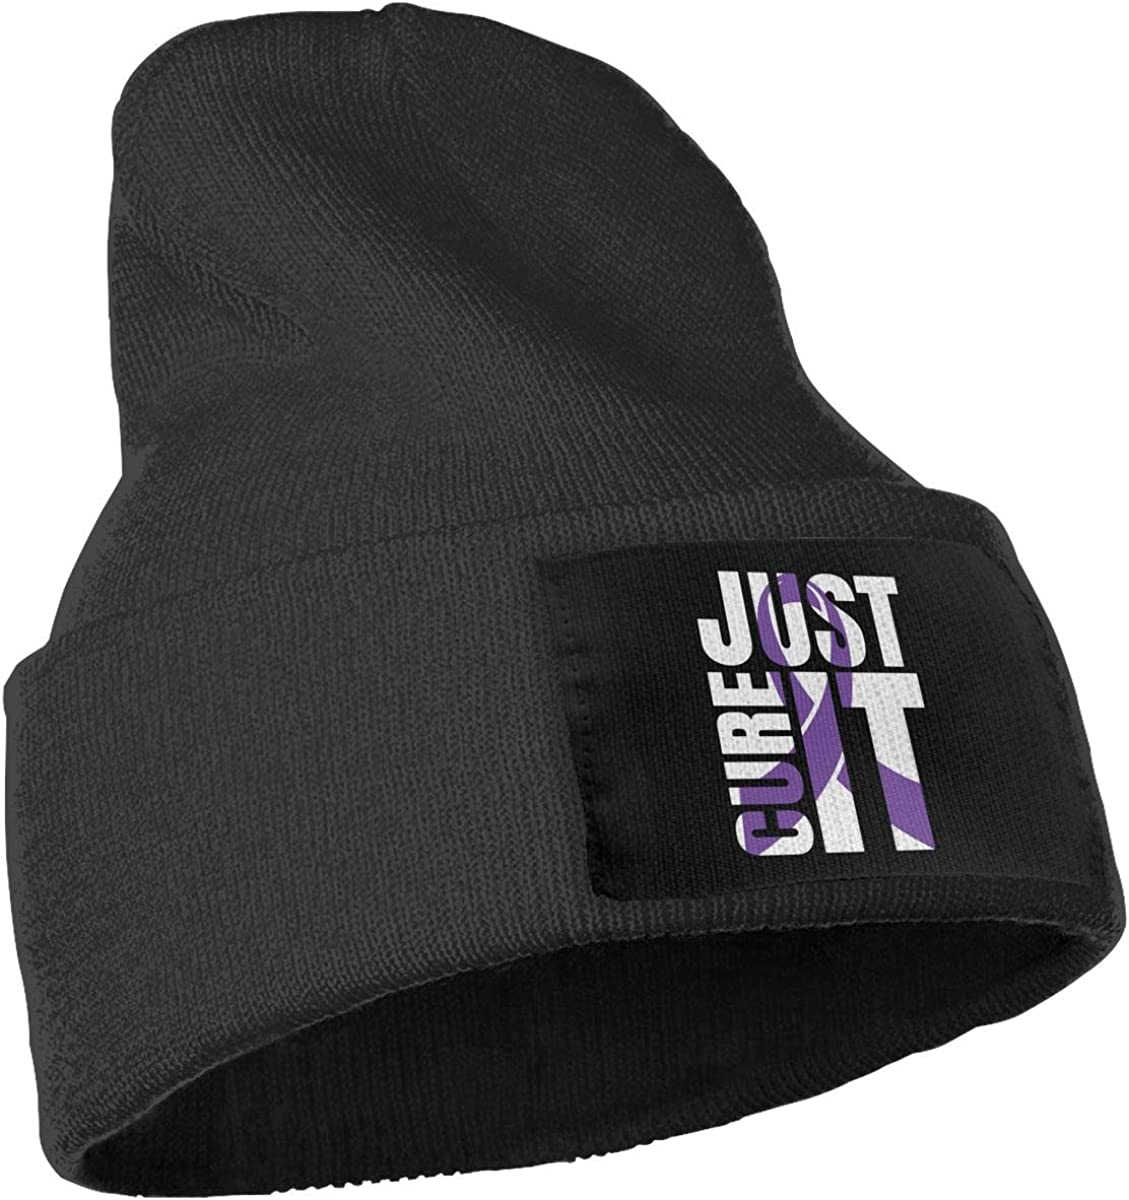 COLLJL-8 Men /& Women Just Cure It Leiomyosarcoma Cancer Awareness Flag Outdoor Warm Knit Beanies Hat Soft Winter Skull Caps